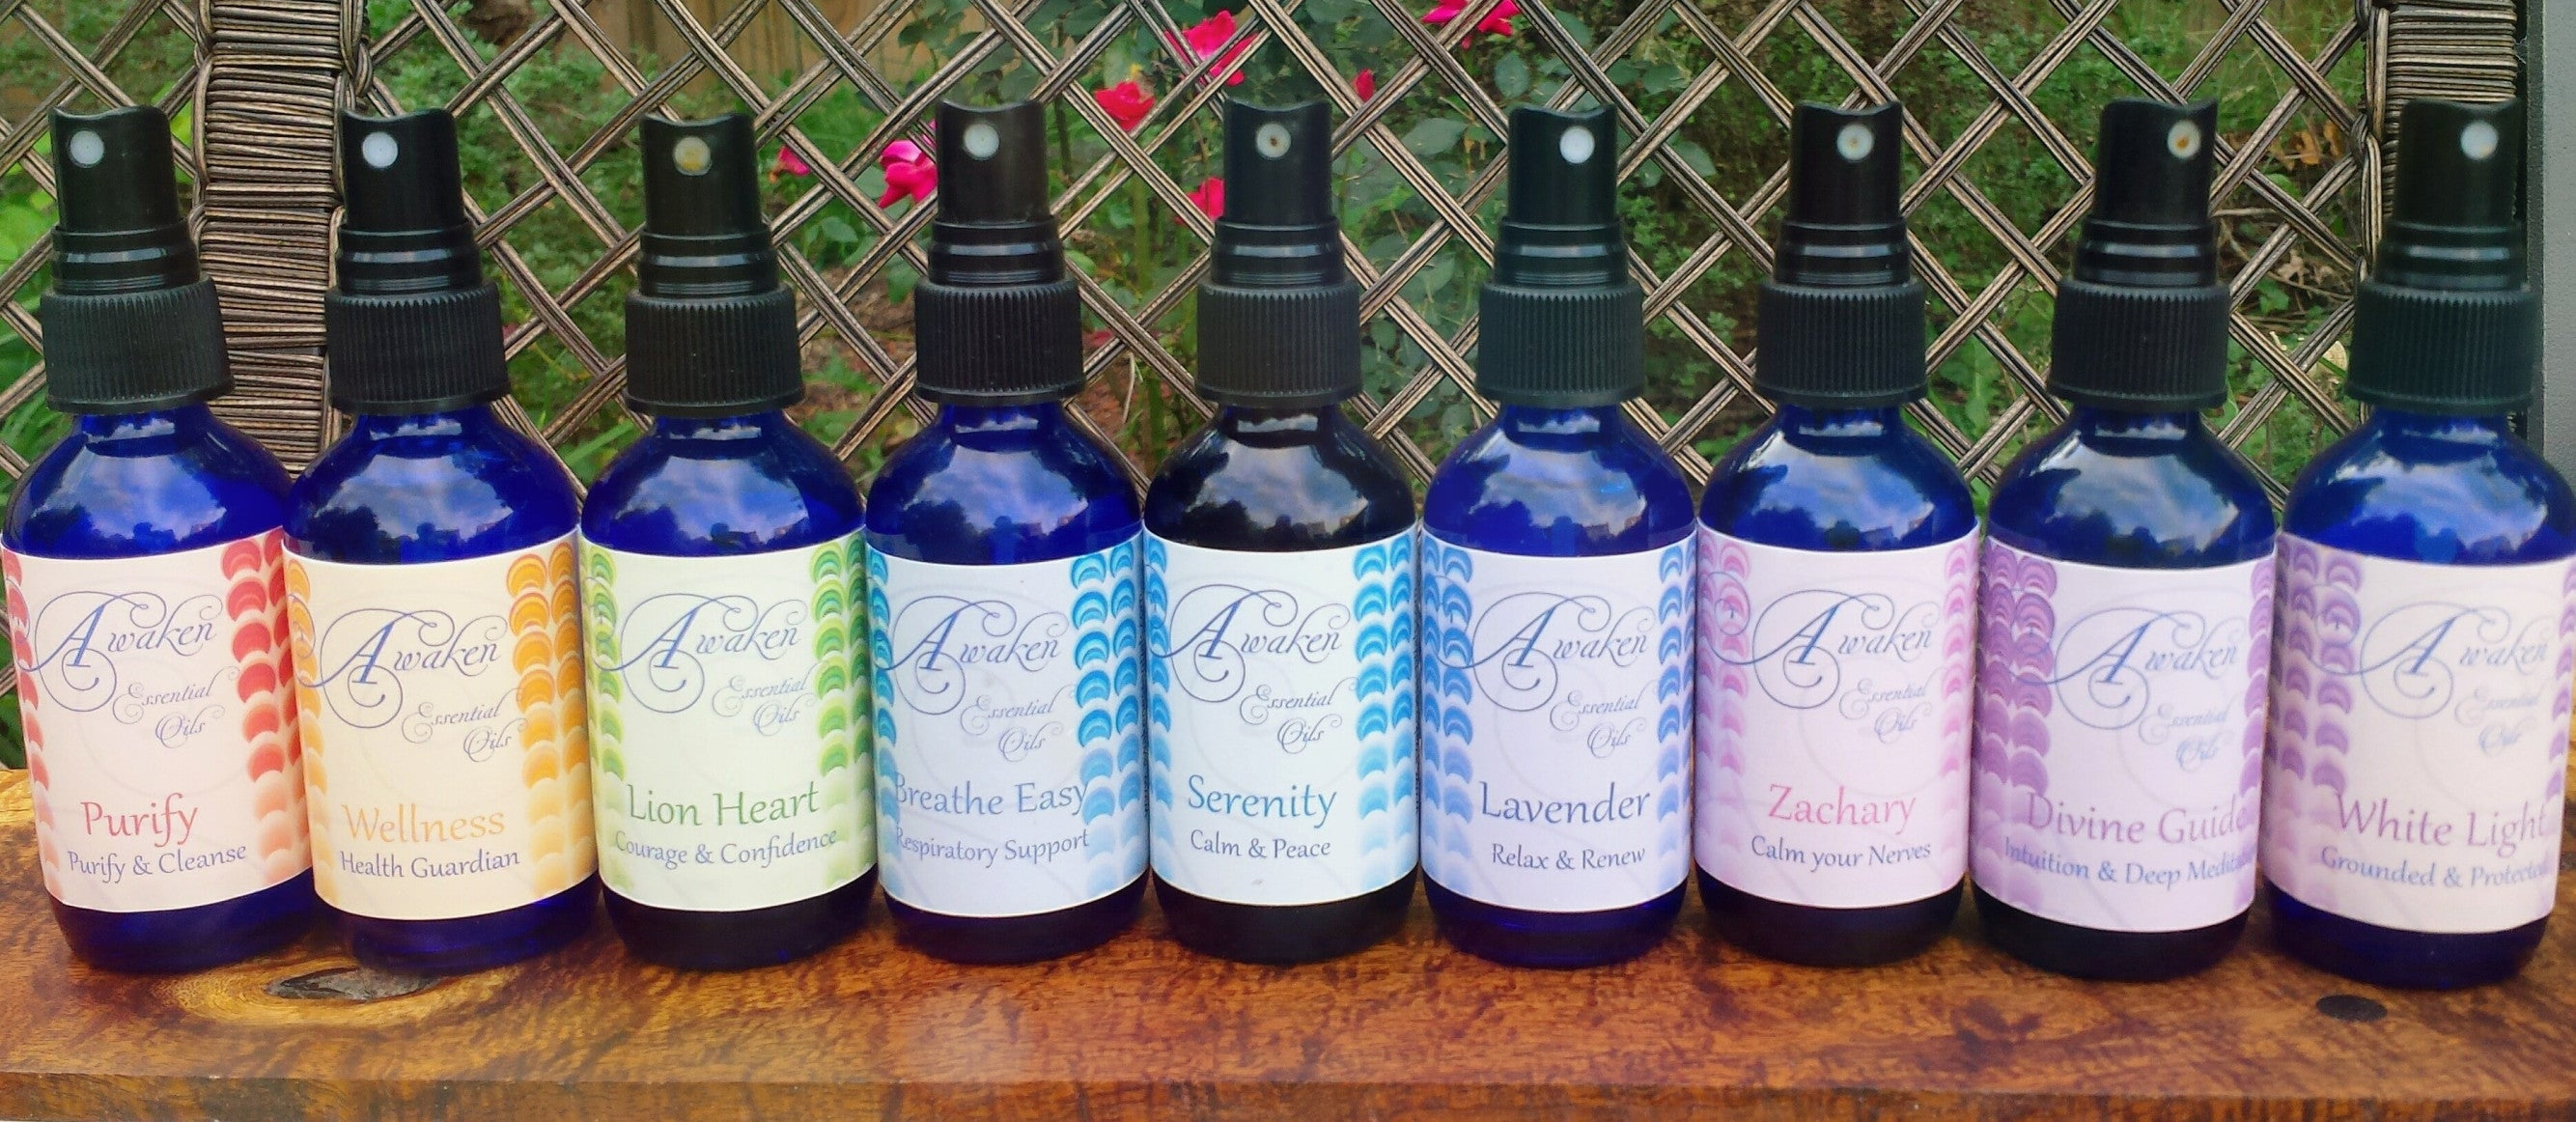 Organic Essential Oil Body/Room Sprays